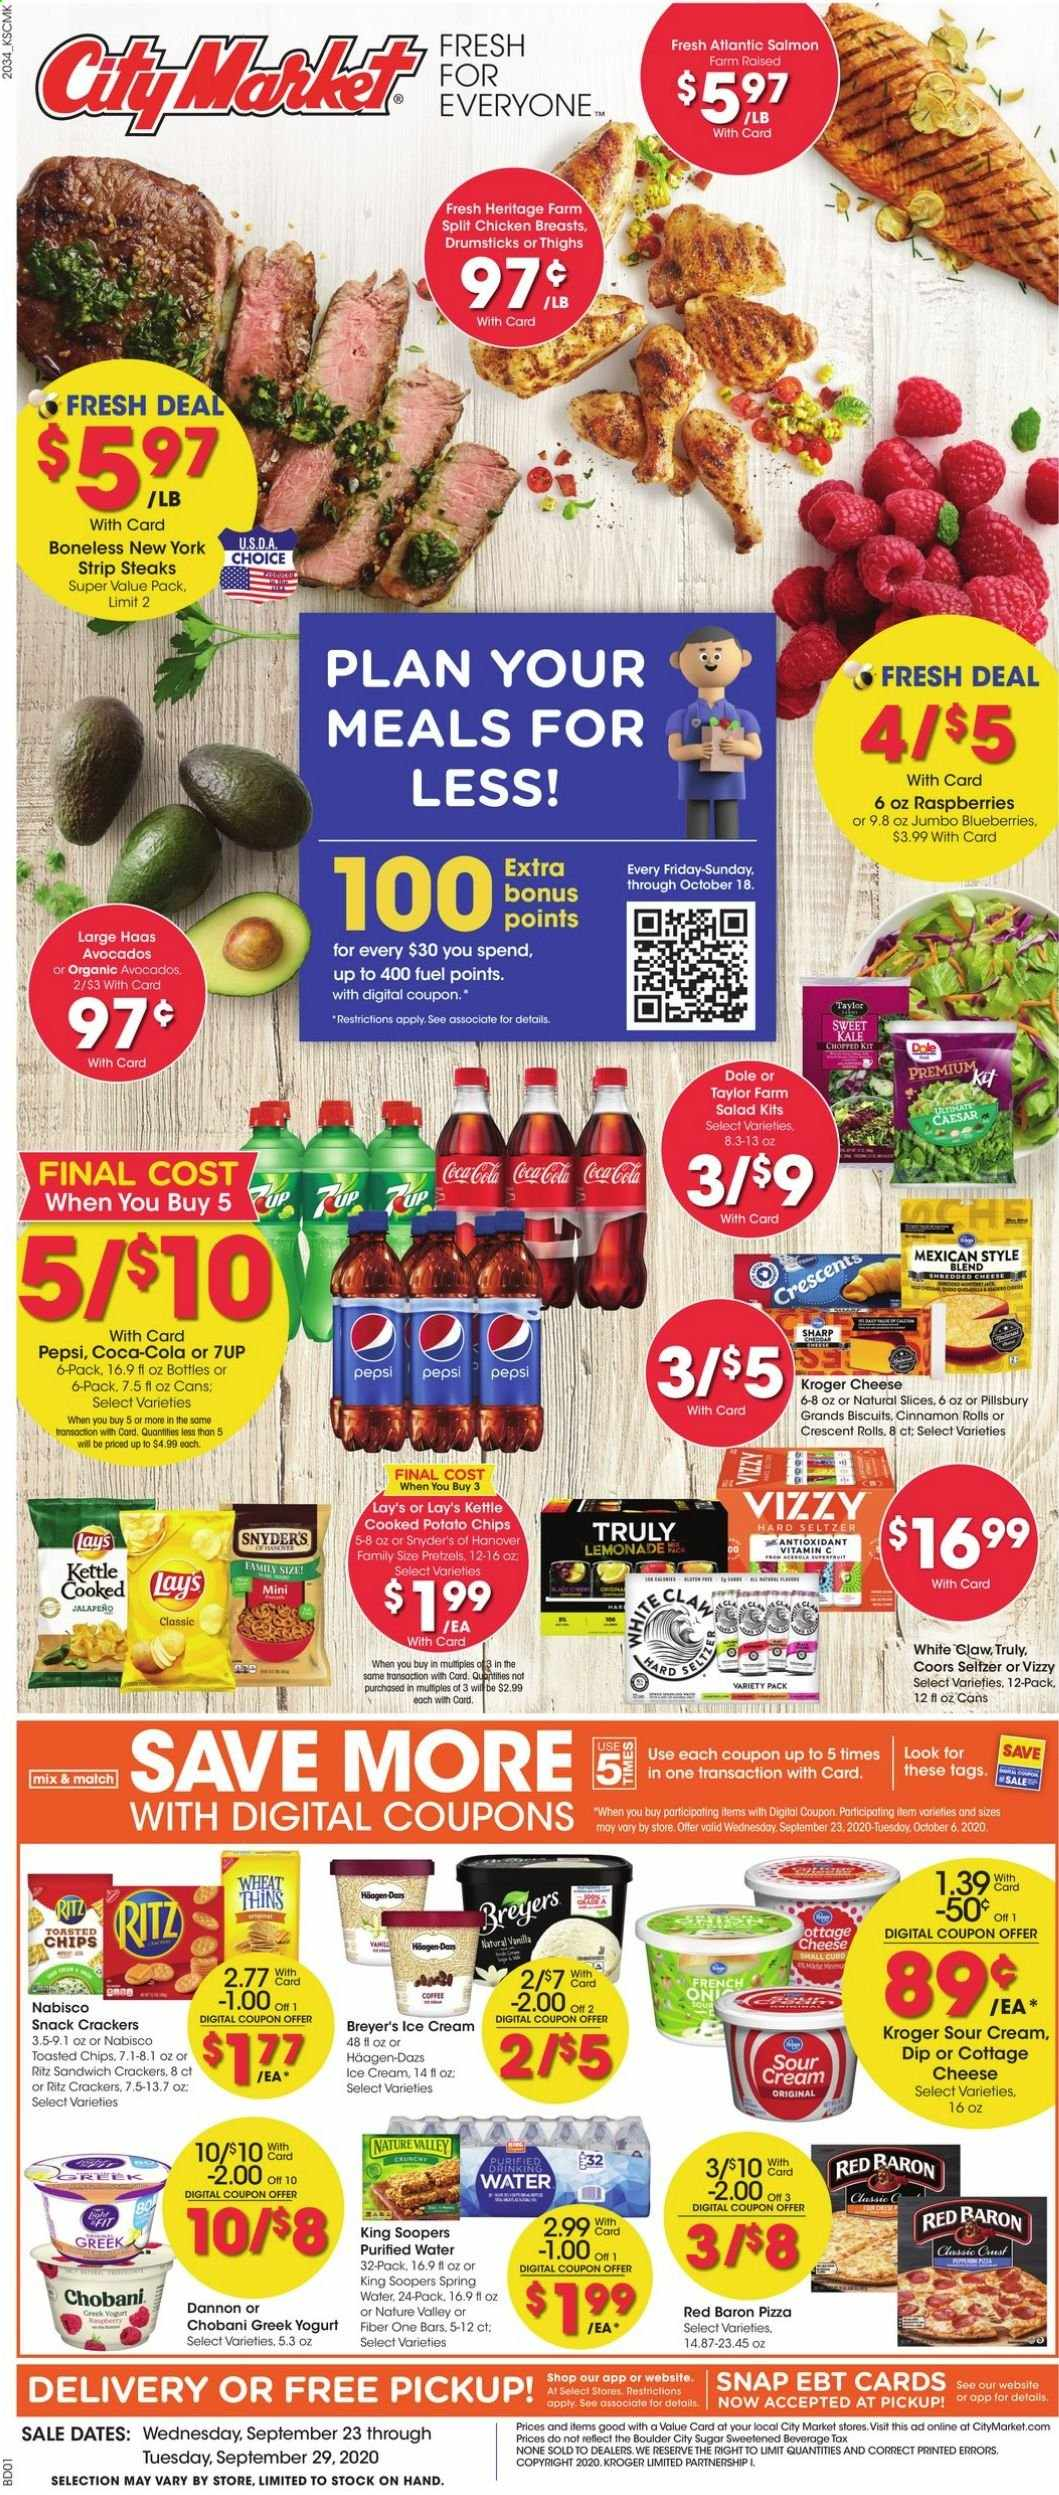 City Market Flyer - 09.23.2020 - 09.29.2020 - Sales products - avocado, biscuits, blueberries, cinnamon rolls, Coca-Cola, coffee, cottage cheese, fuel, greek yogurt, lemonade, raspberries, salmon, seltzer, Sharp, sour cream, spring water, sugar, vitamin c, ice cream, kale, pizza, potato chips, pretzels, chicken, chicken breast, Pepsi, chips, cheese, sandwich, snack, Breyer, Lay's, salad, Coors, Dole, purified water, kettle, spring. Page 1.